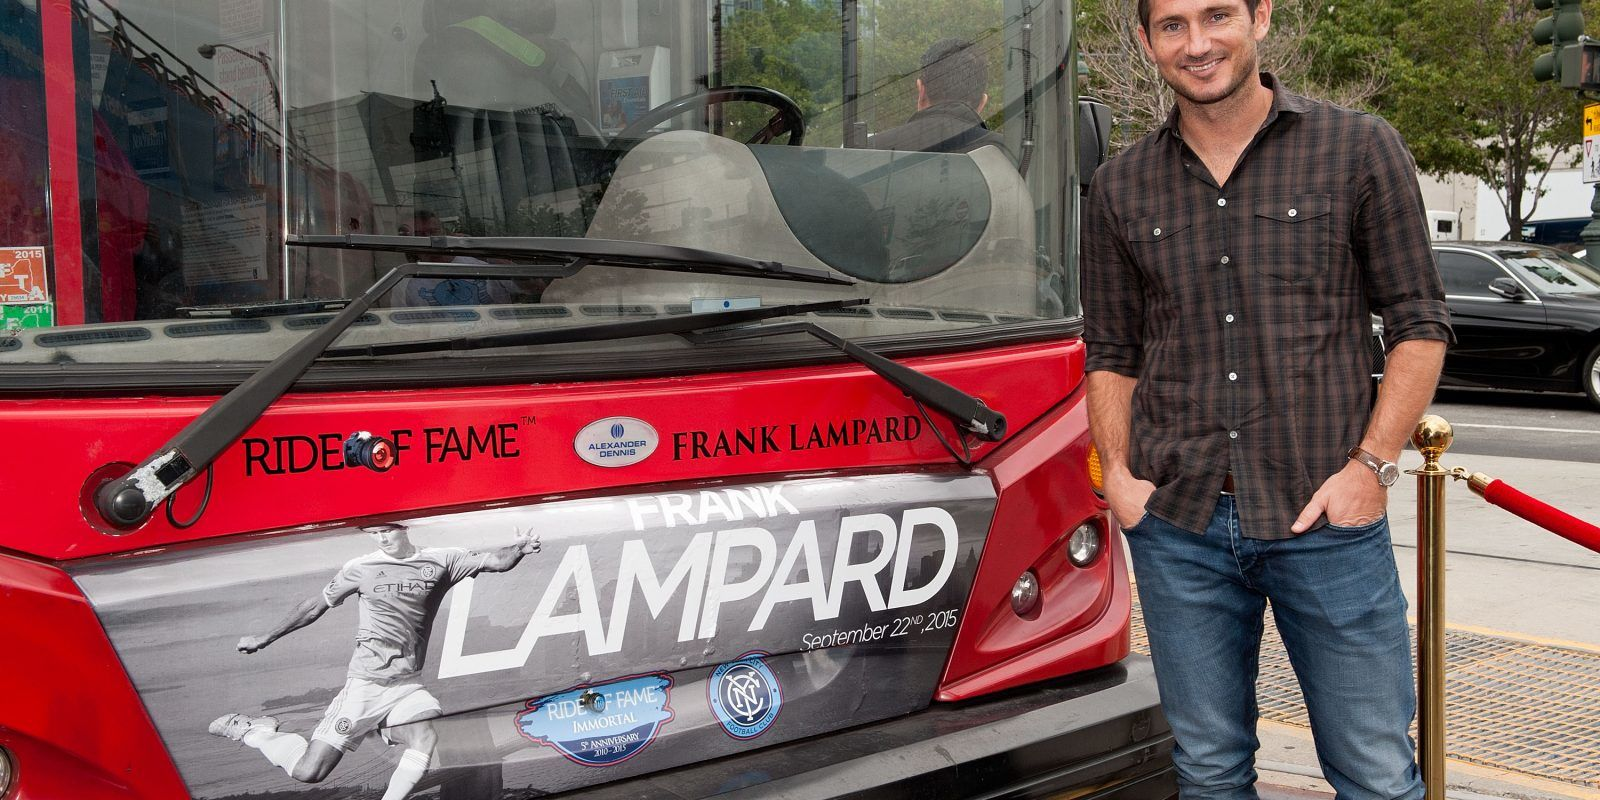 David Villa, Frank Lampard, Andrea Pirlo NYCFC Ride Of Fame Induction Ceremony. Imagen Por: